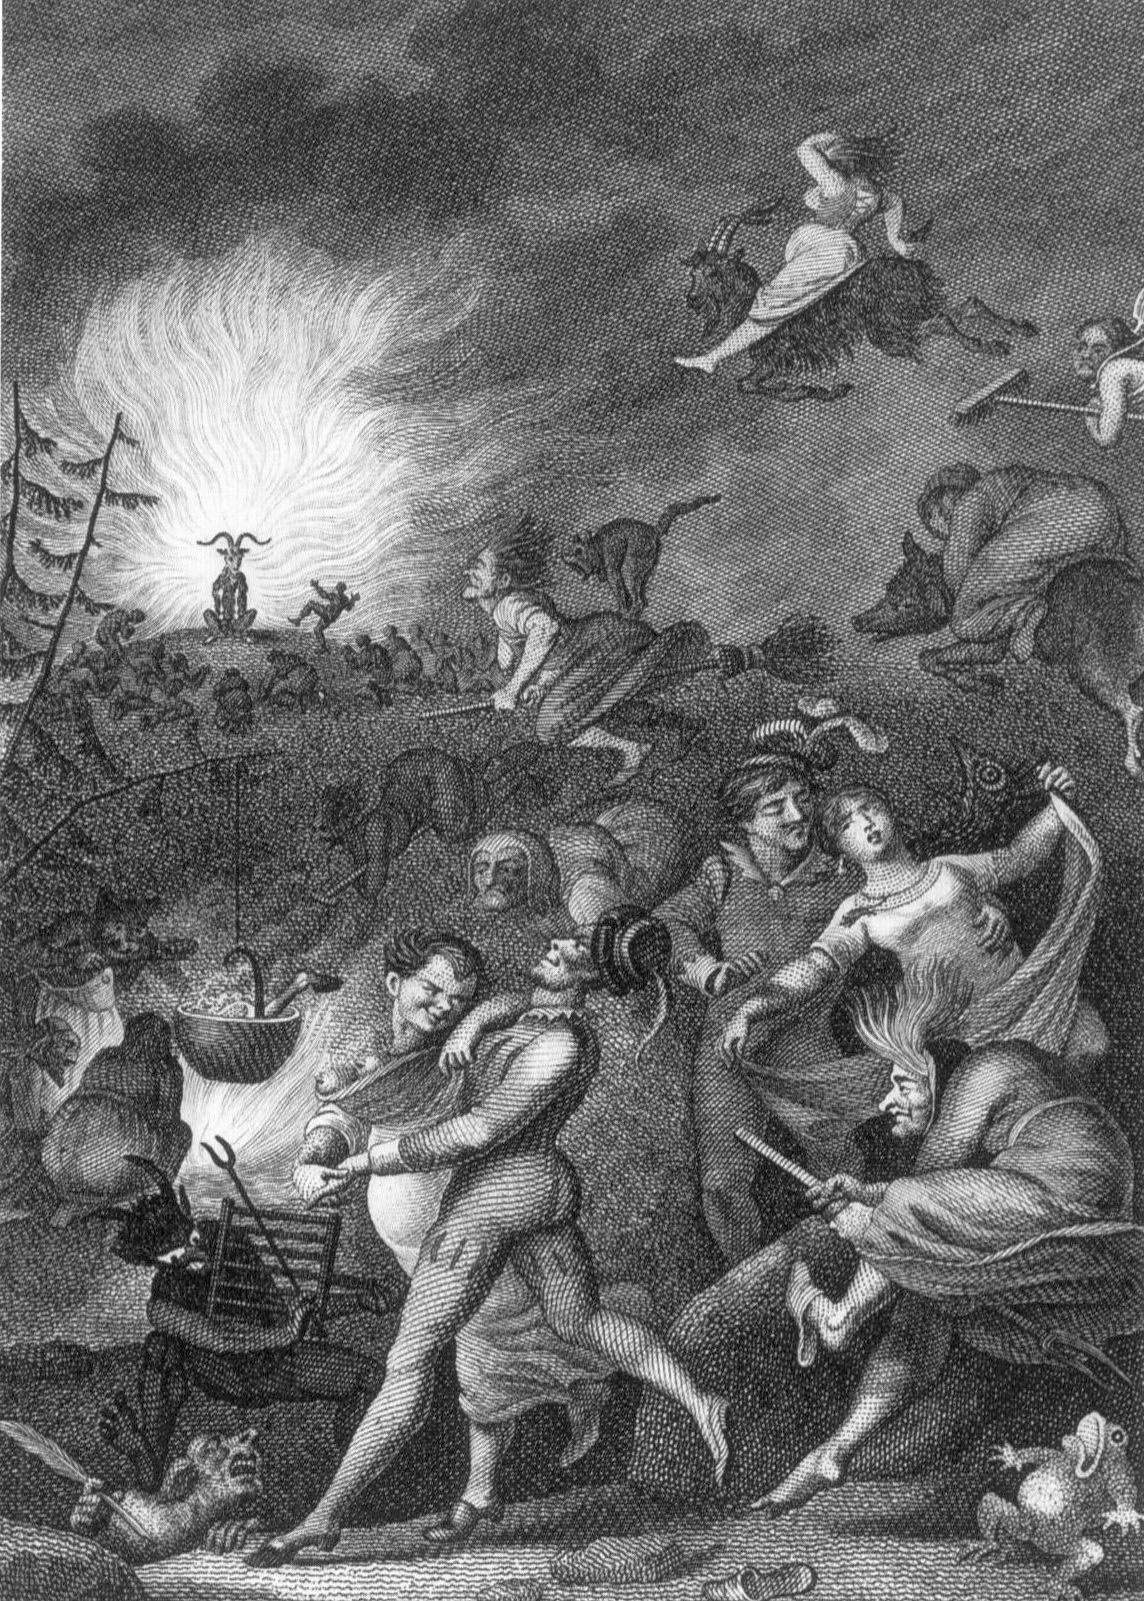 http://upload.wikimedia.org/wikipedia/commons/c/c6/Walpurgisnacht.jpg